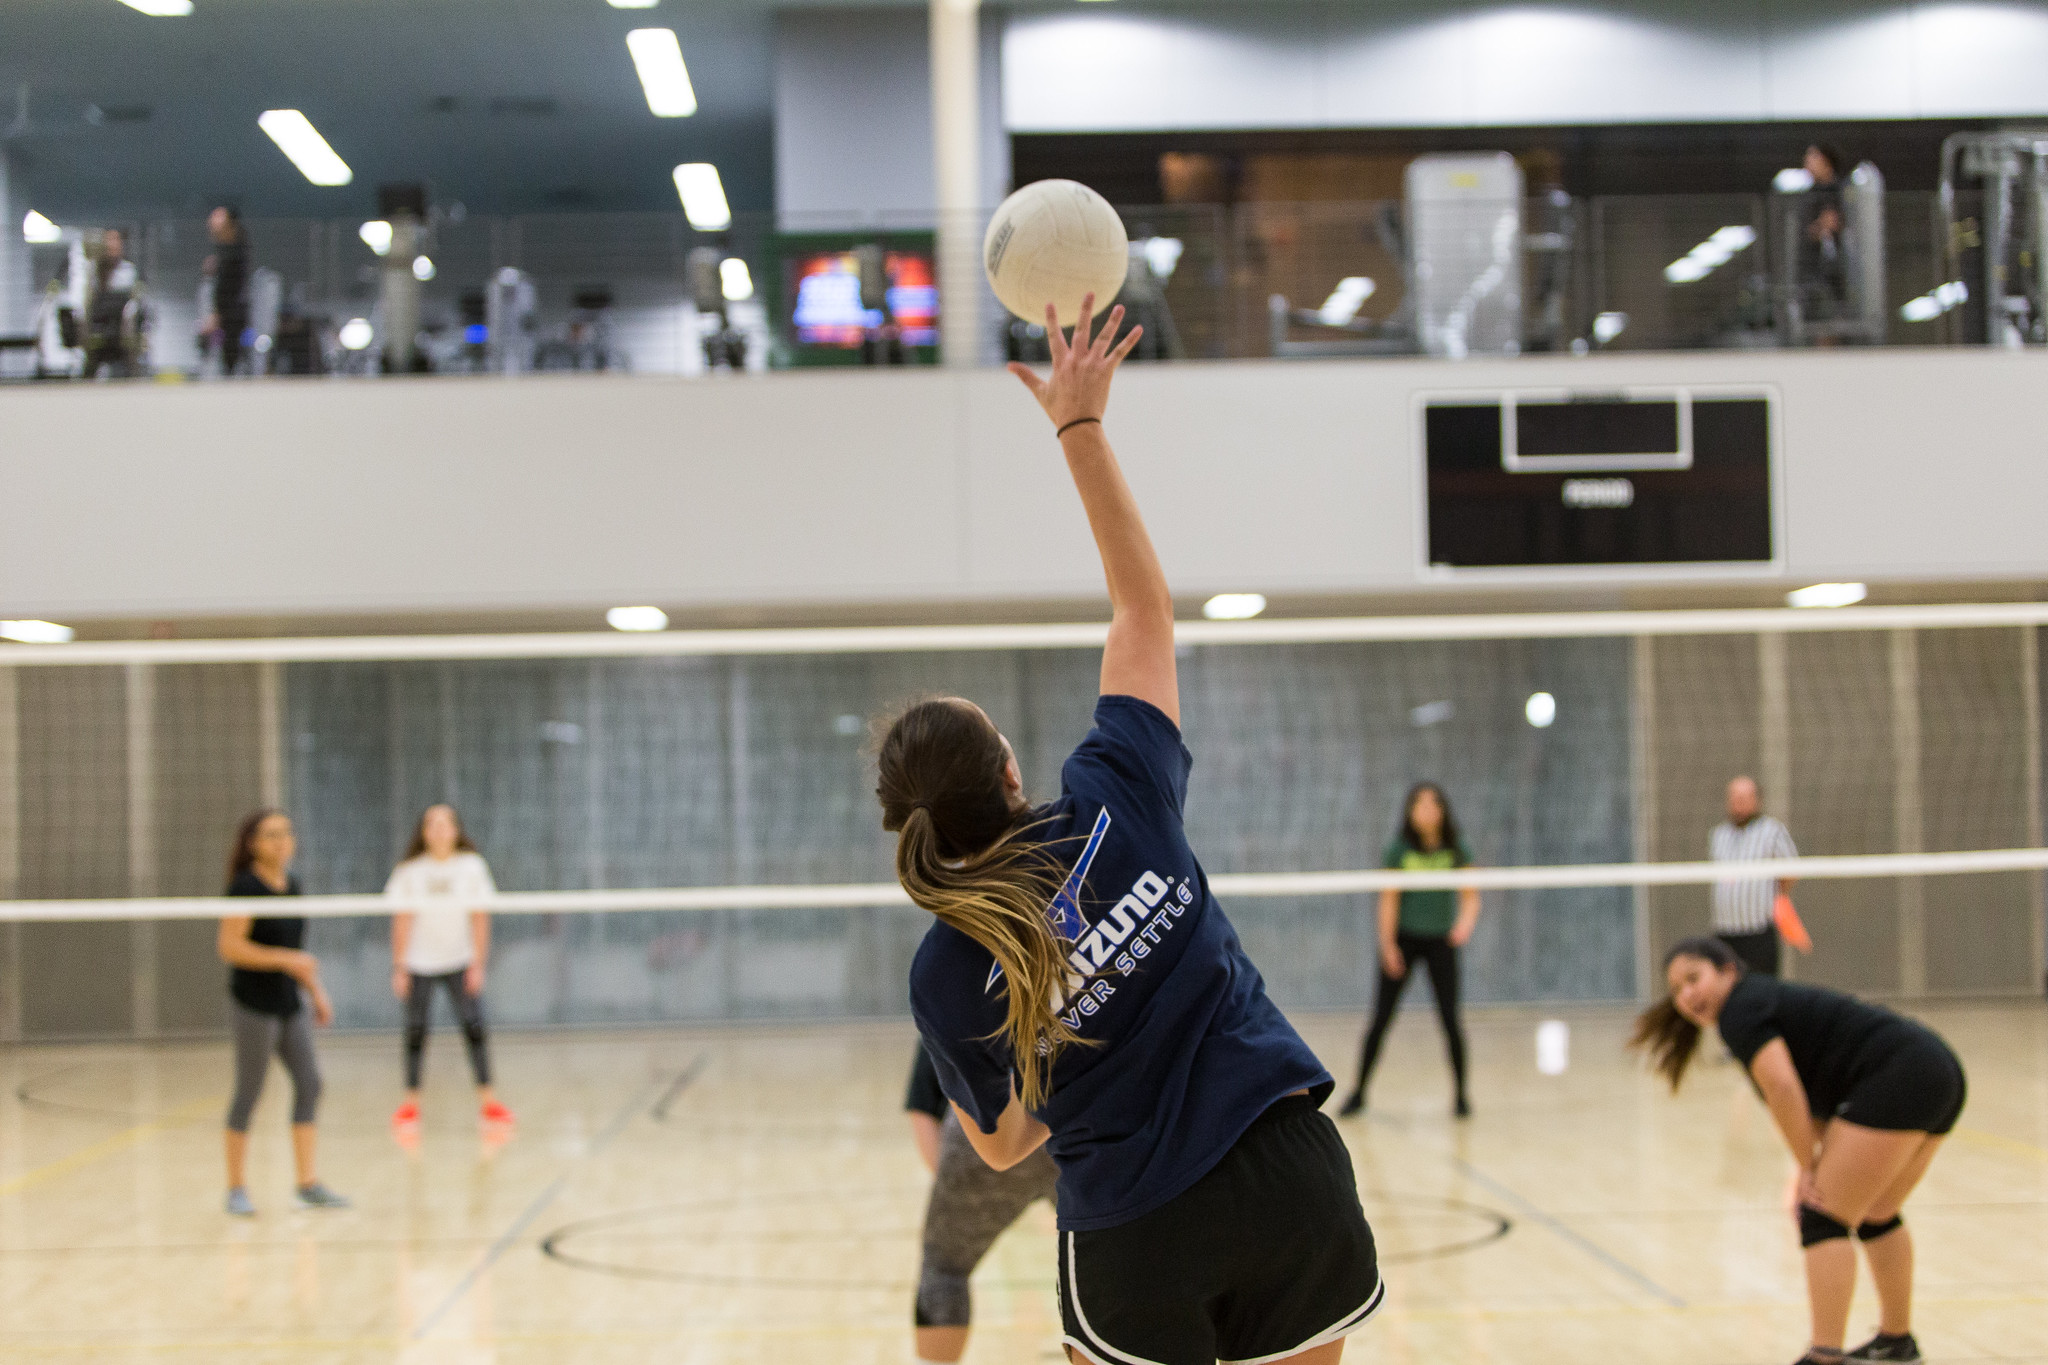 Student playing intramural volleyball